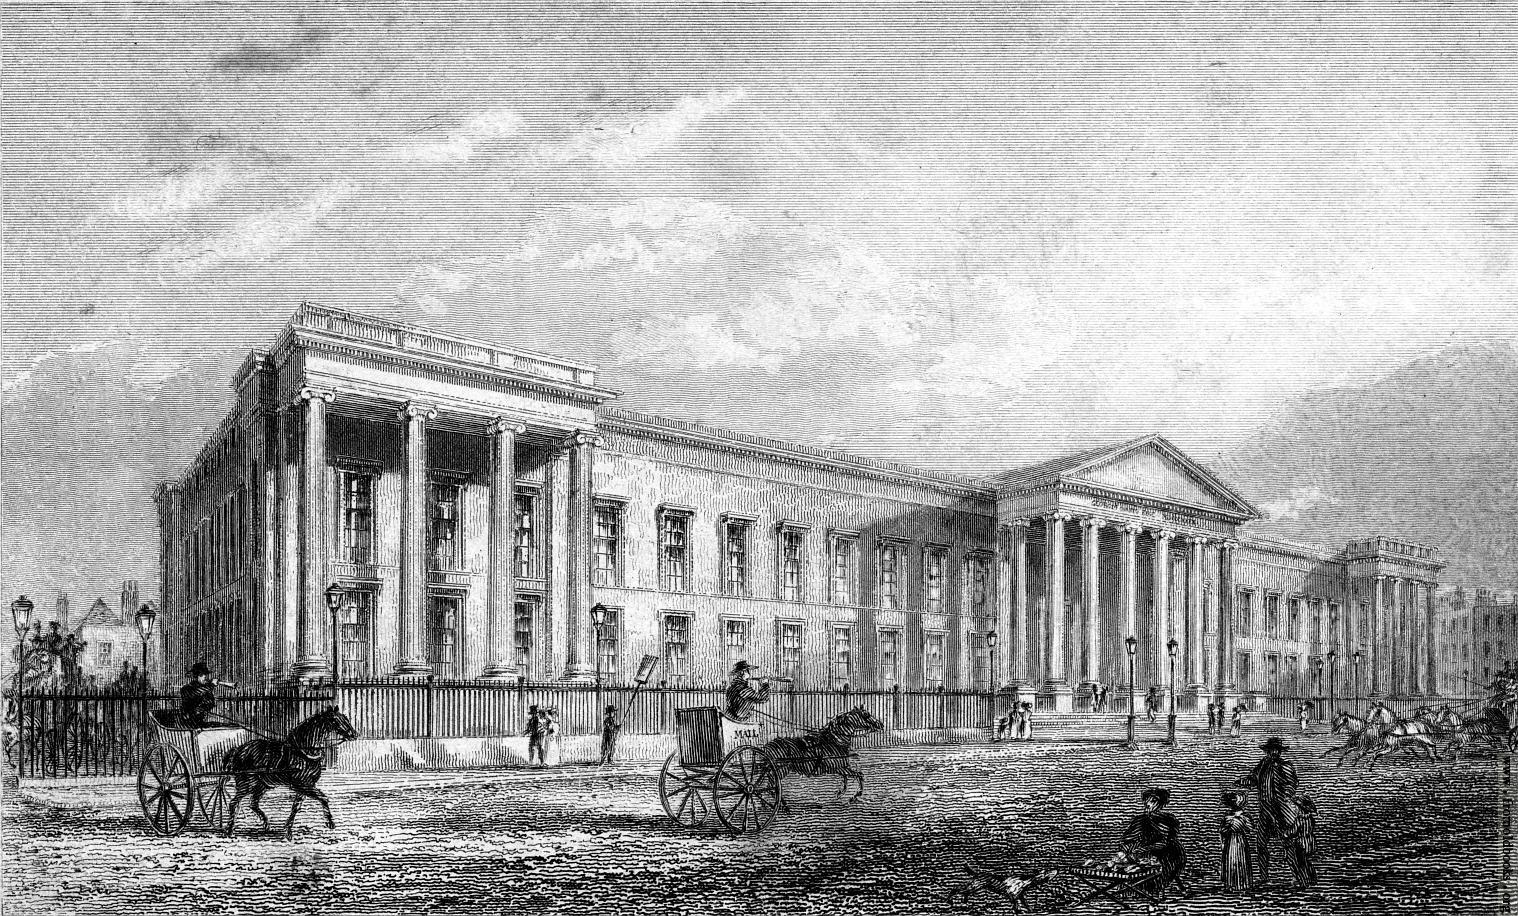 The 19th century headquarters of the General Post Office in St Martins-le-Grand in the City of London.